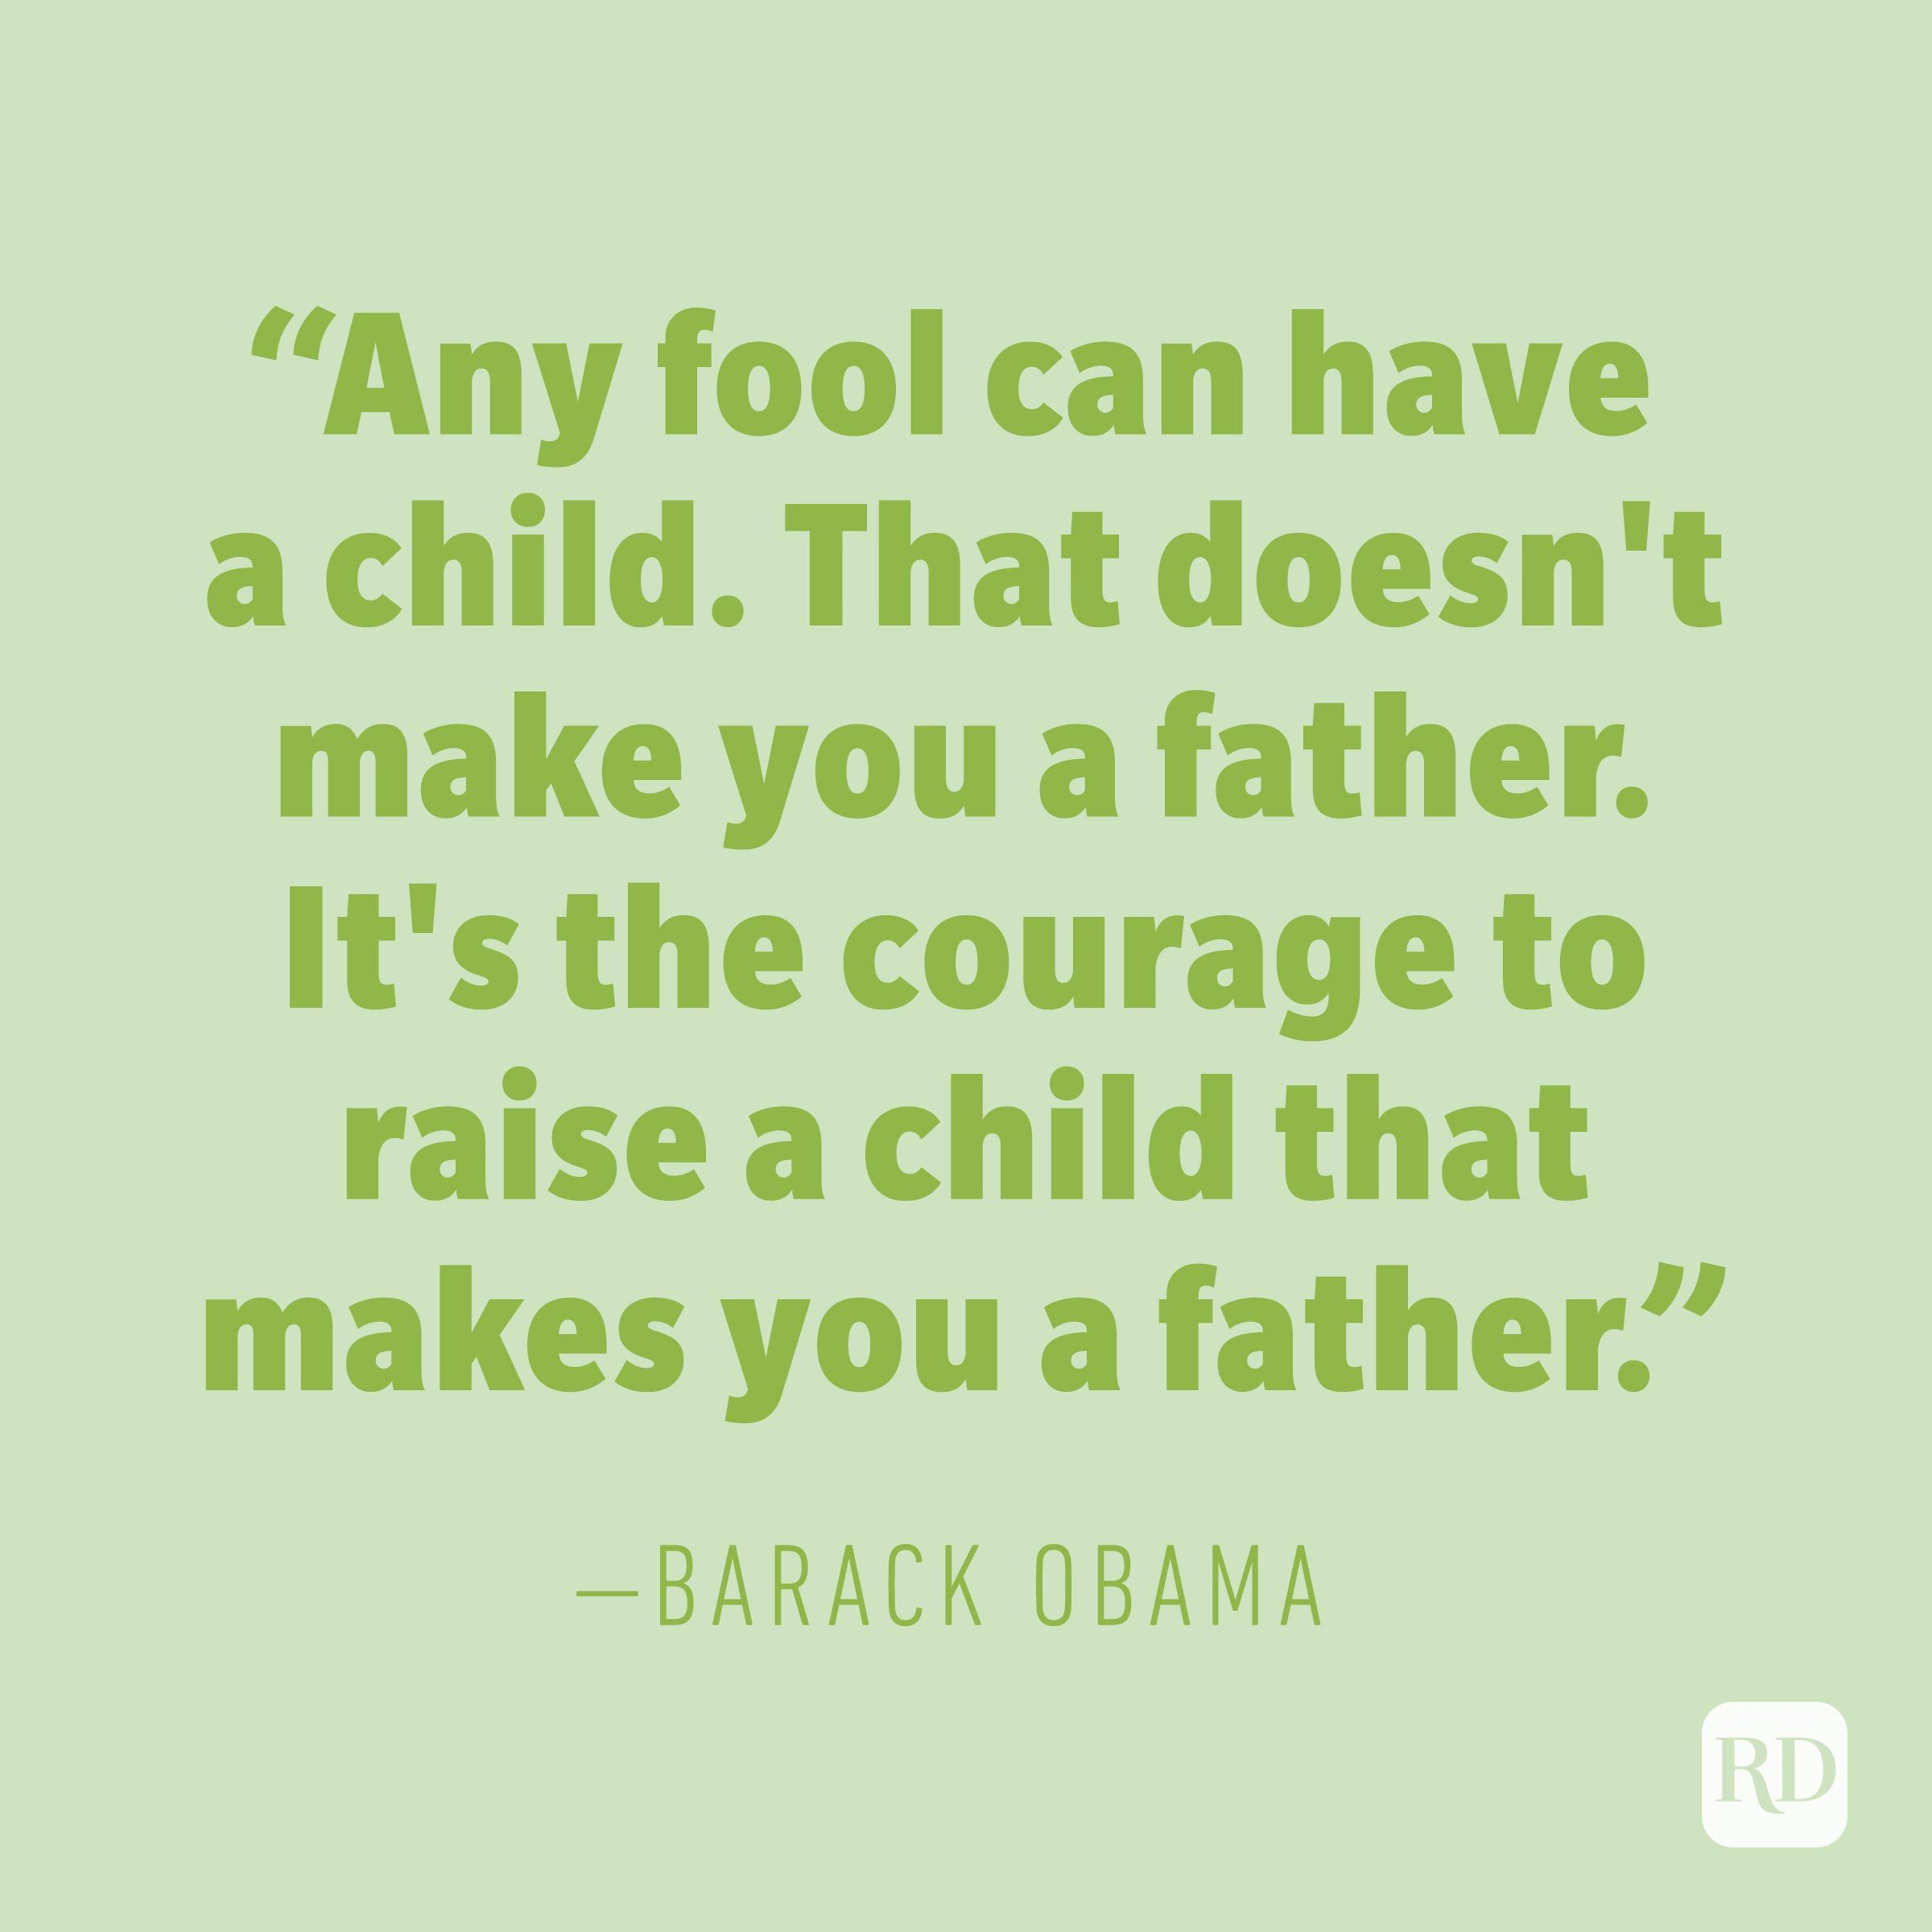 """Any fool can have a child. That doesn't make you a father. It's the courage to raise a child that makes you a father."" —BARACK OBAMA"